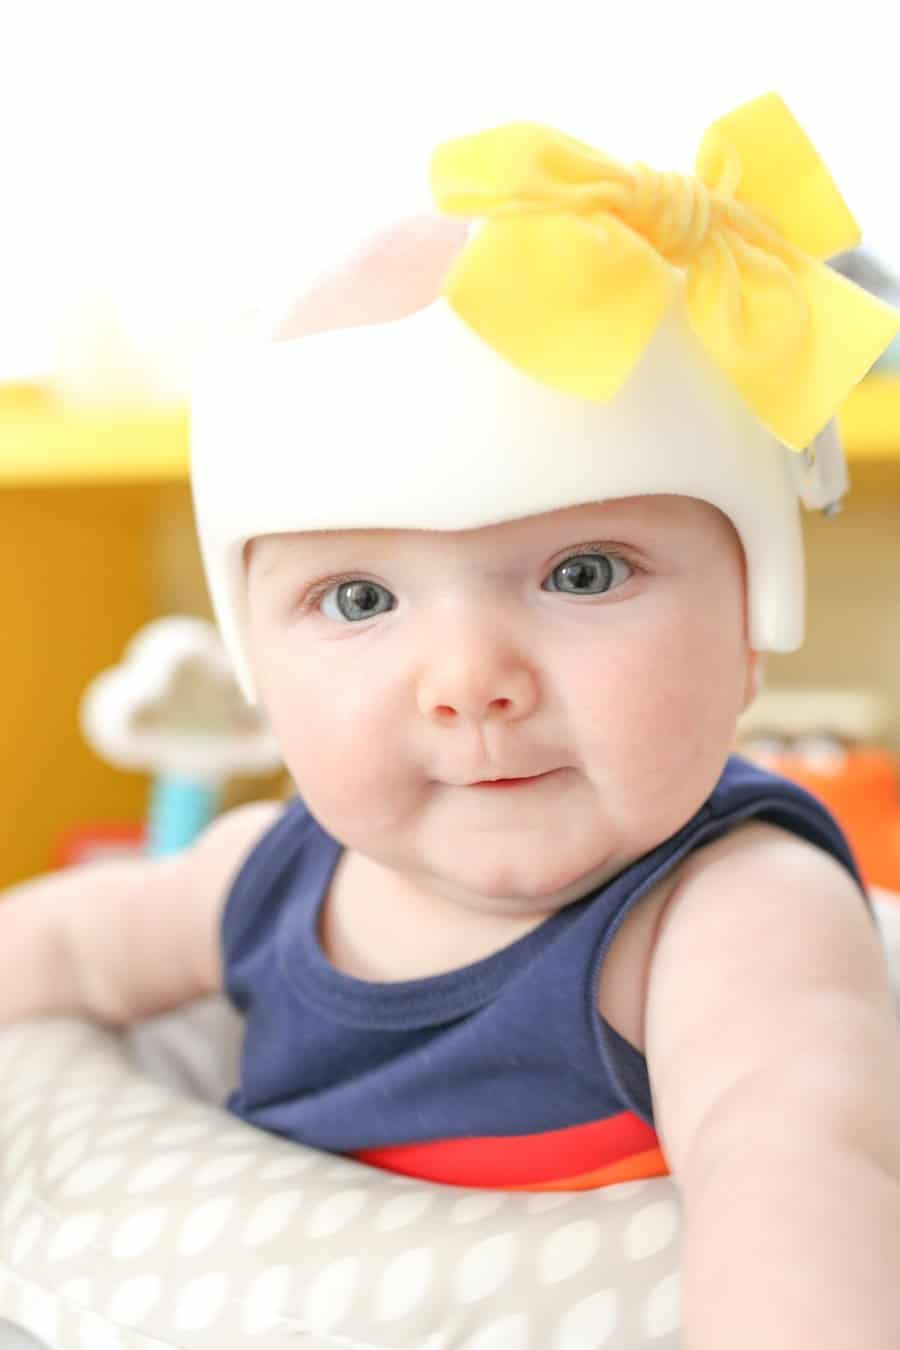 Plagiocephaly and Helmet Journey, Cranial Tech, Cranial Technologies, DOC Band Helmet, Hanger Clinic, STAR Band, Cranial Helmet, Torticollis, How to Clean a Cranial Helmet, How to Decorate a Cranial Helmet, How Long is a Cranial Helmet Worn?, What is Plagiocephaly?, What Causes Plagiocephaly?, Doc Band Review